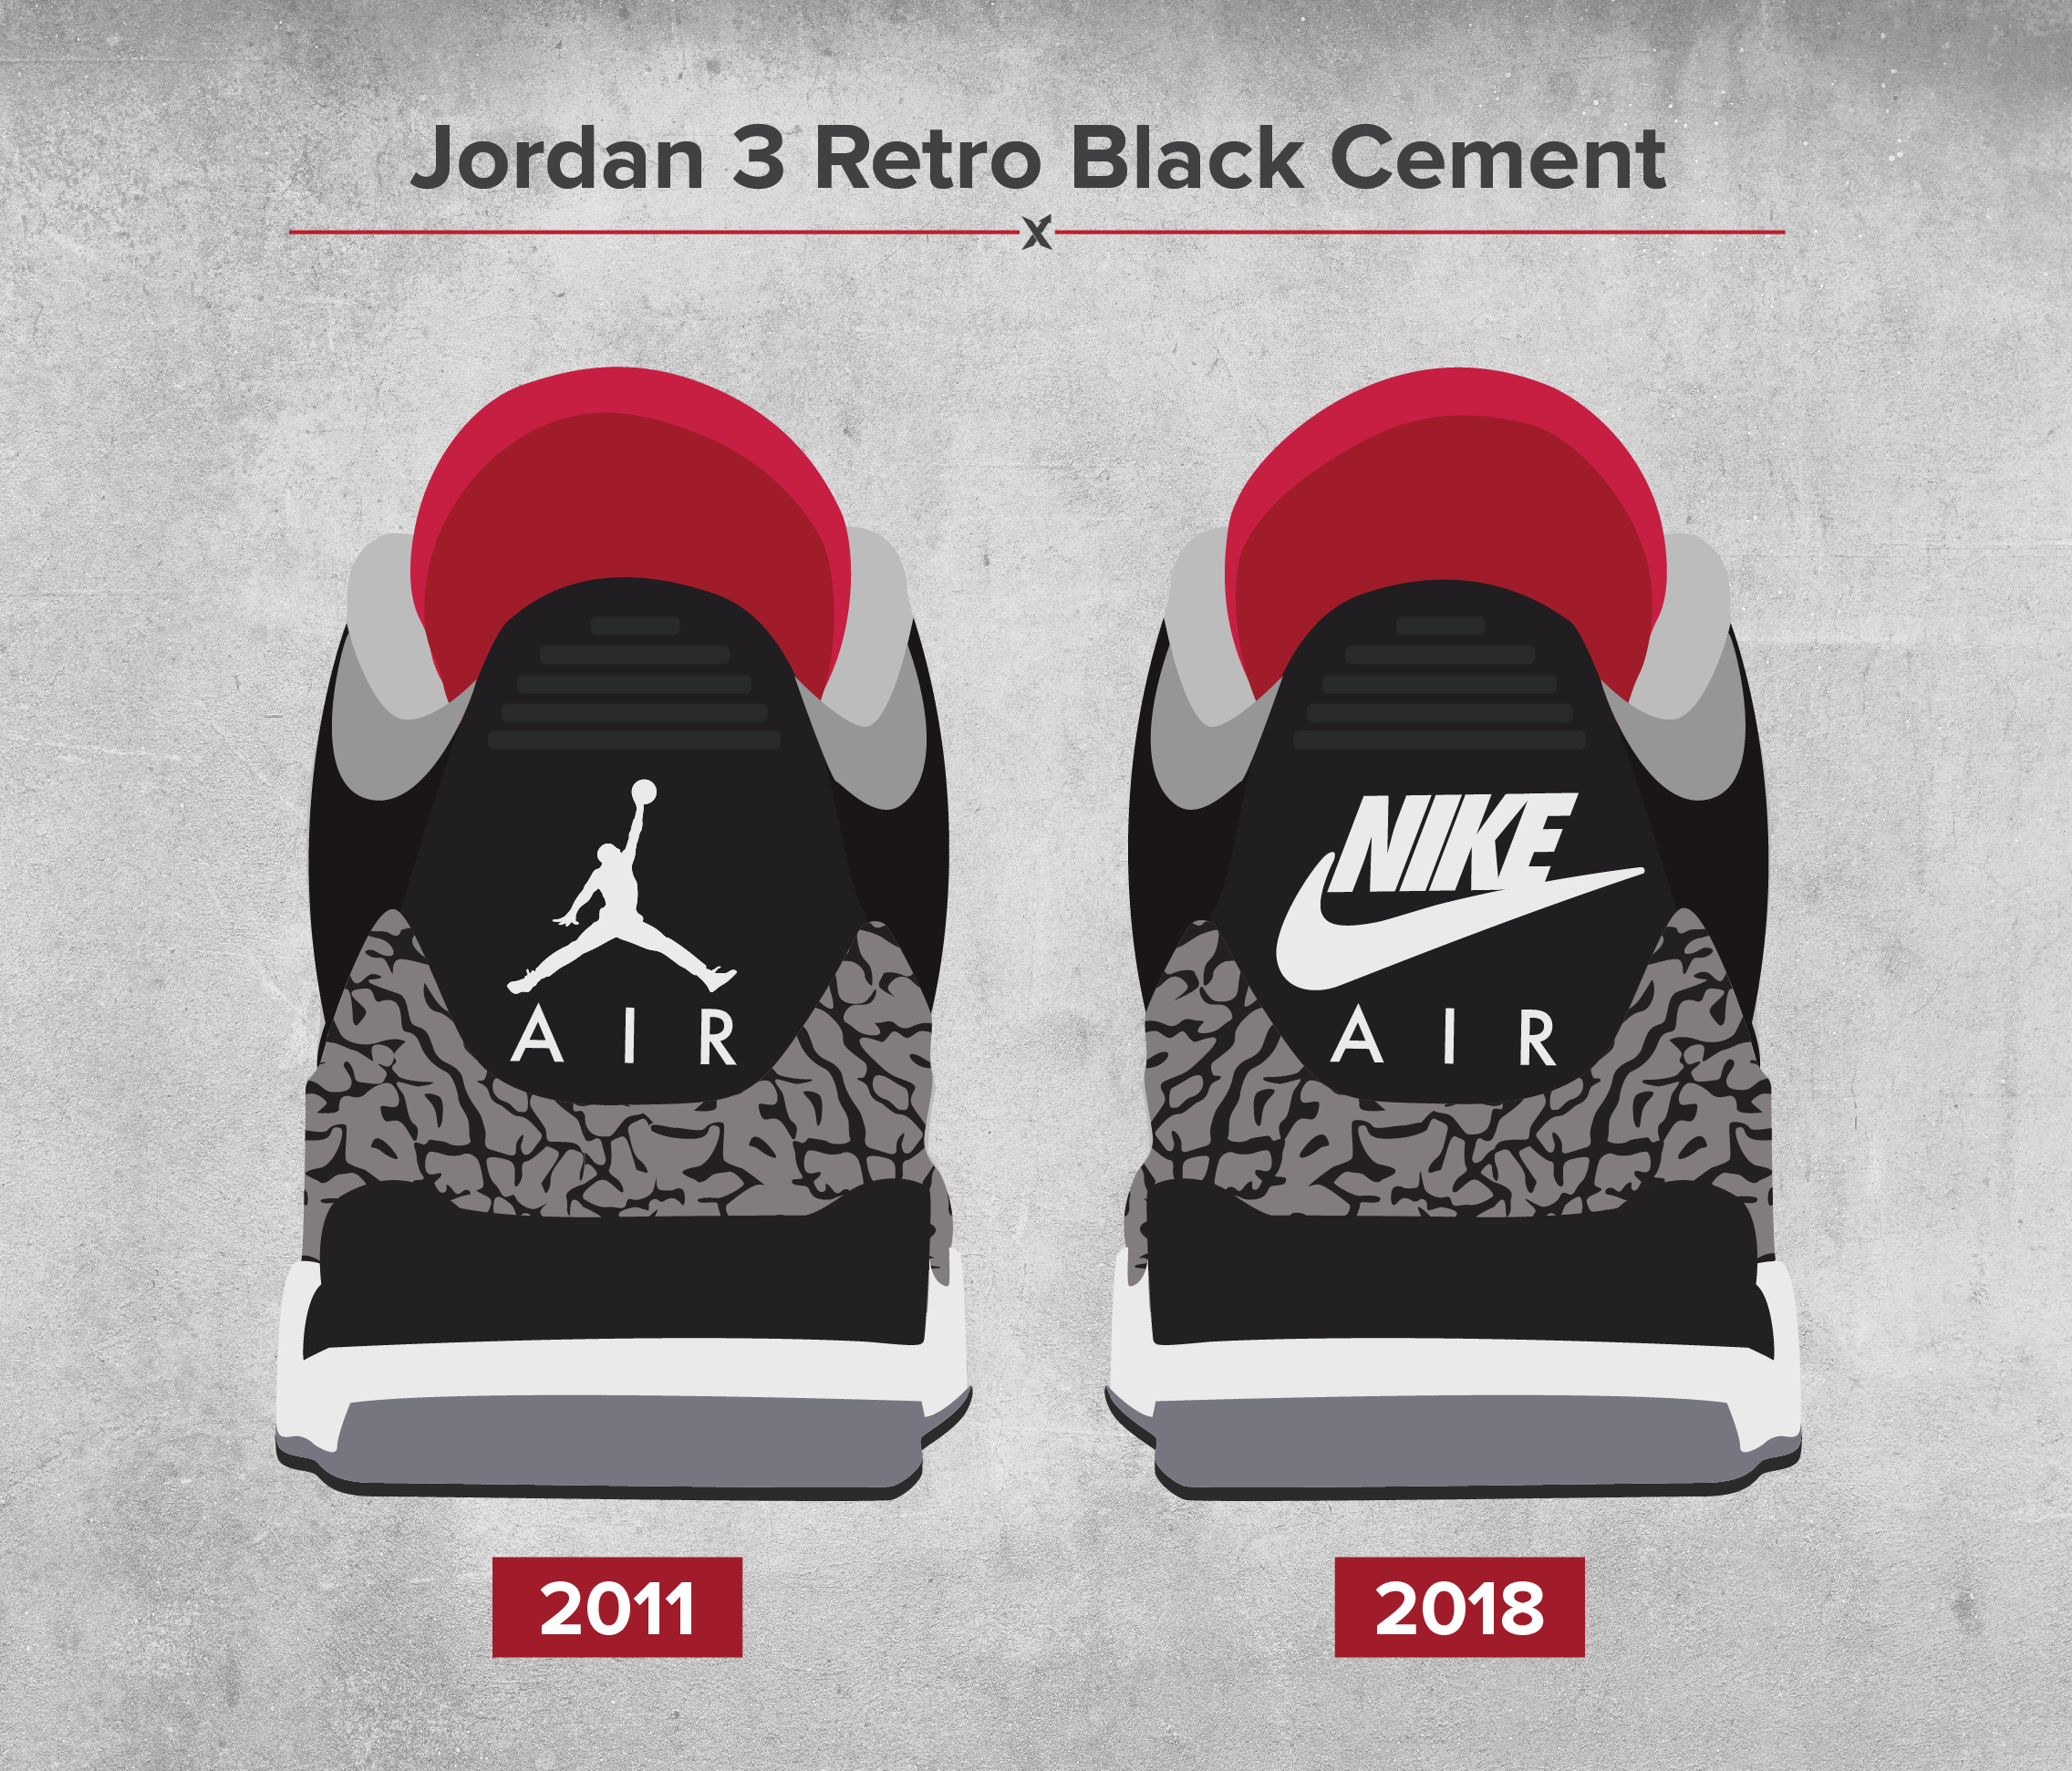 8266f7f1204b9a The 2018 model mirrors the 1988 original in nearly all other aesthetic  dimensions- from the black cement colorway to the elephant print toe front.